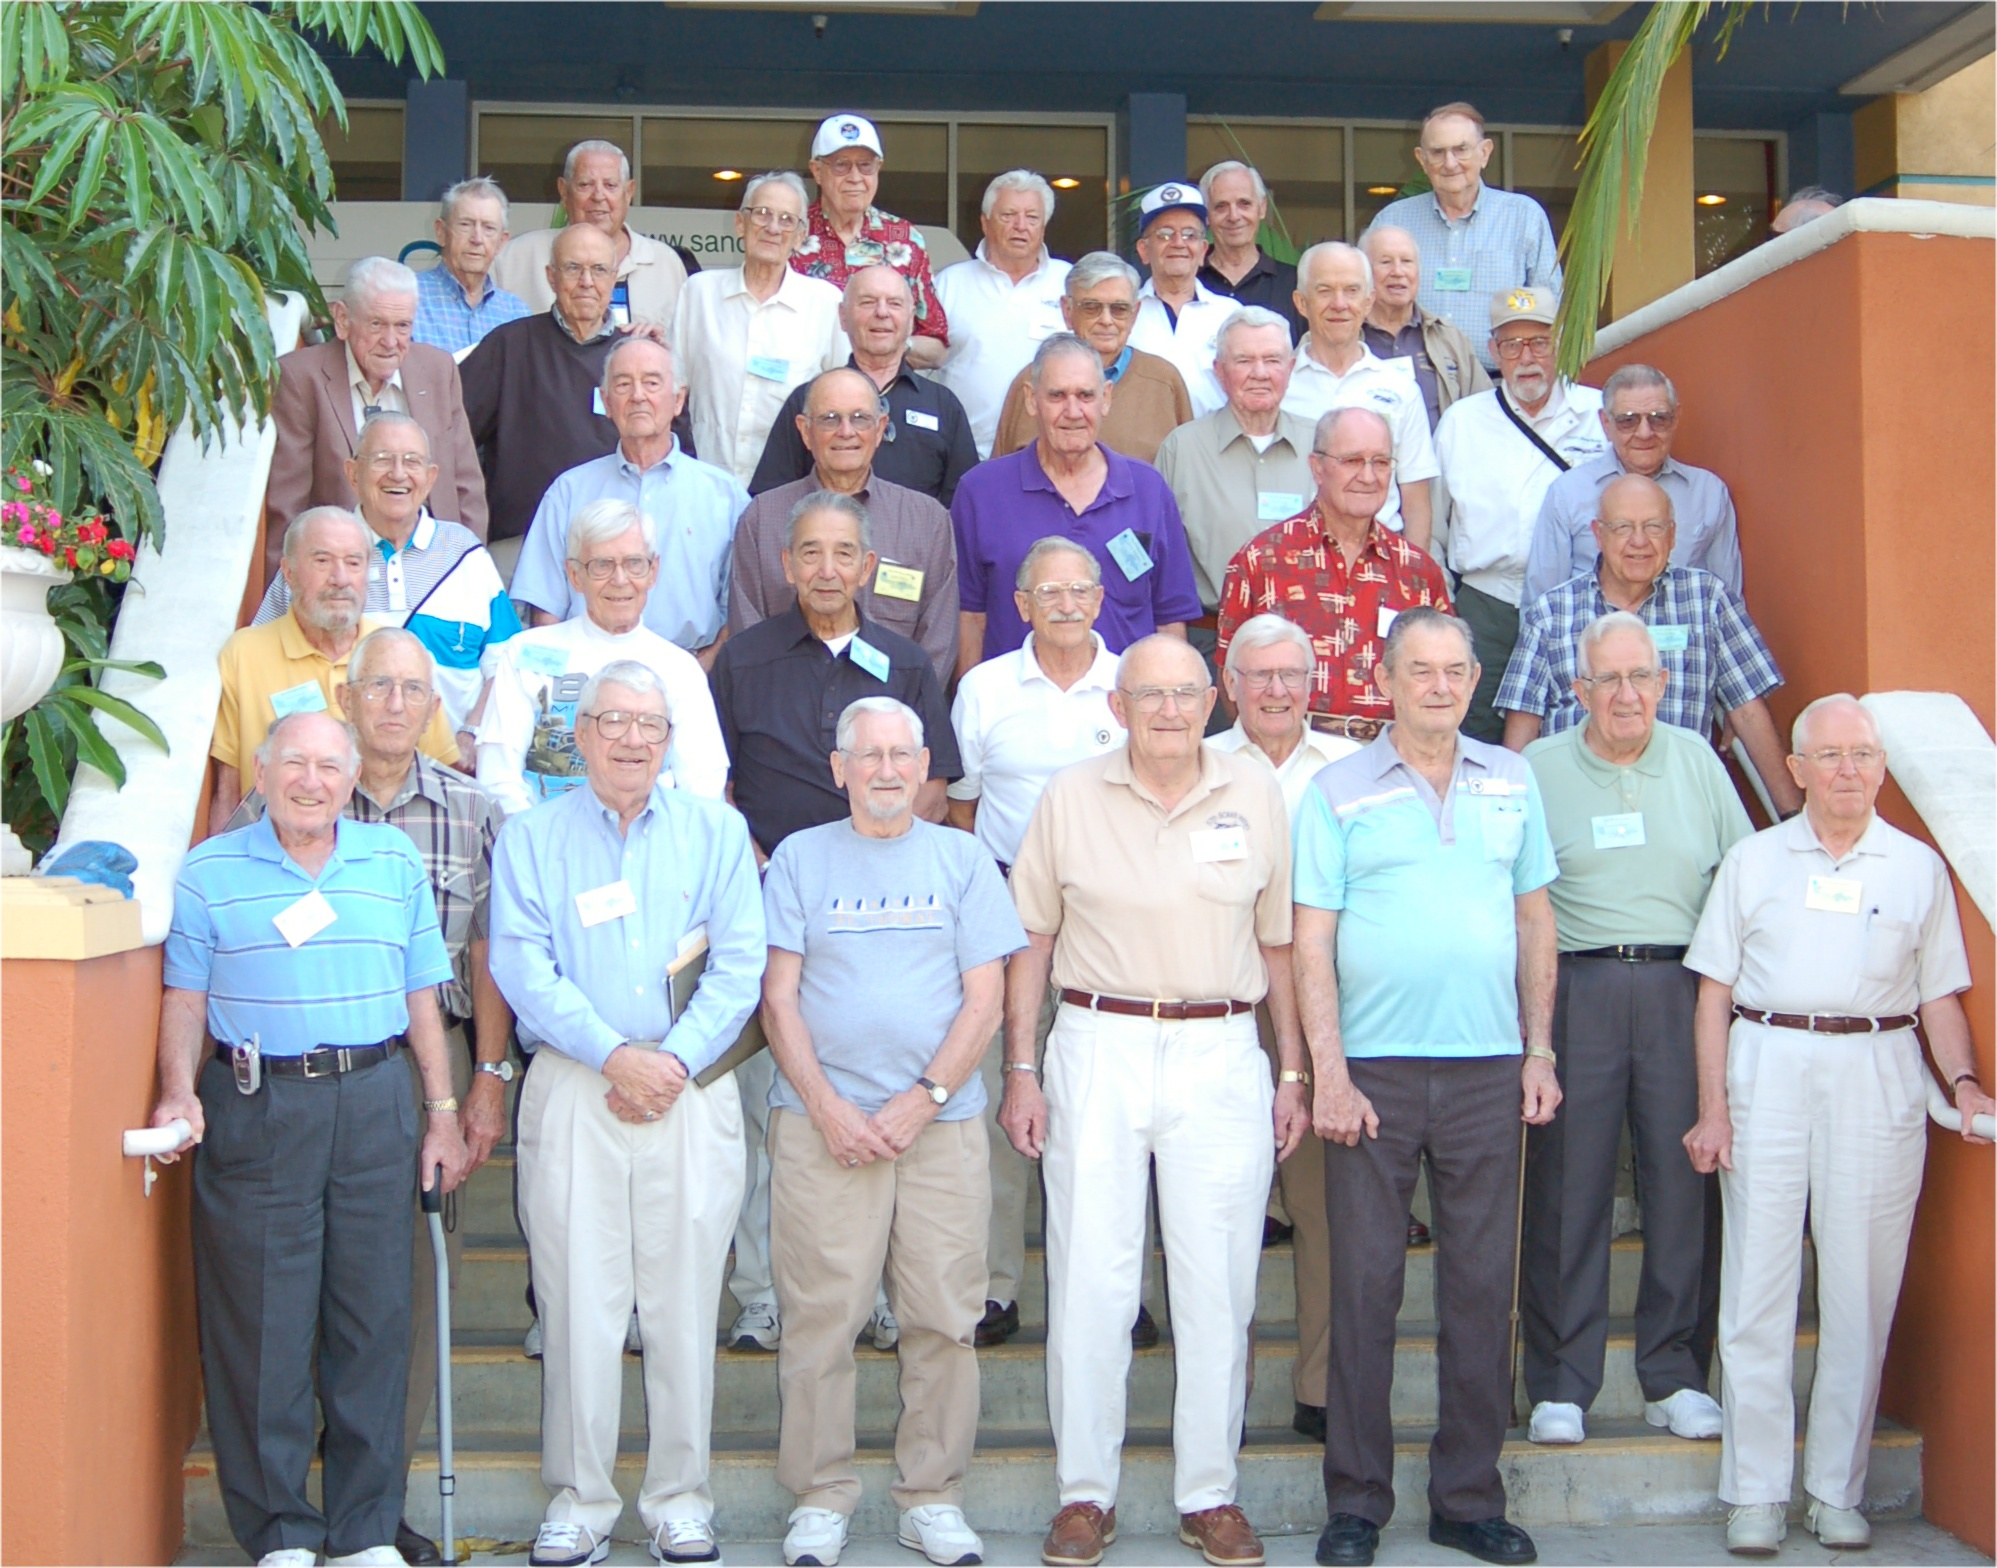 Men of the 57th Bomb Wing - San Diego 2007